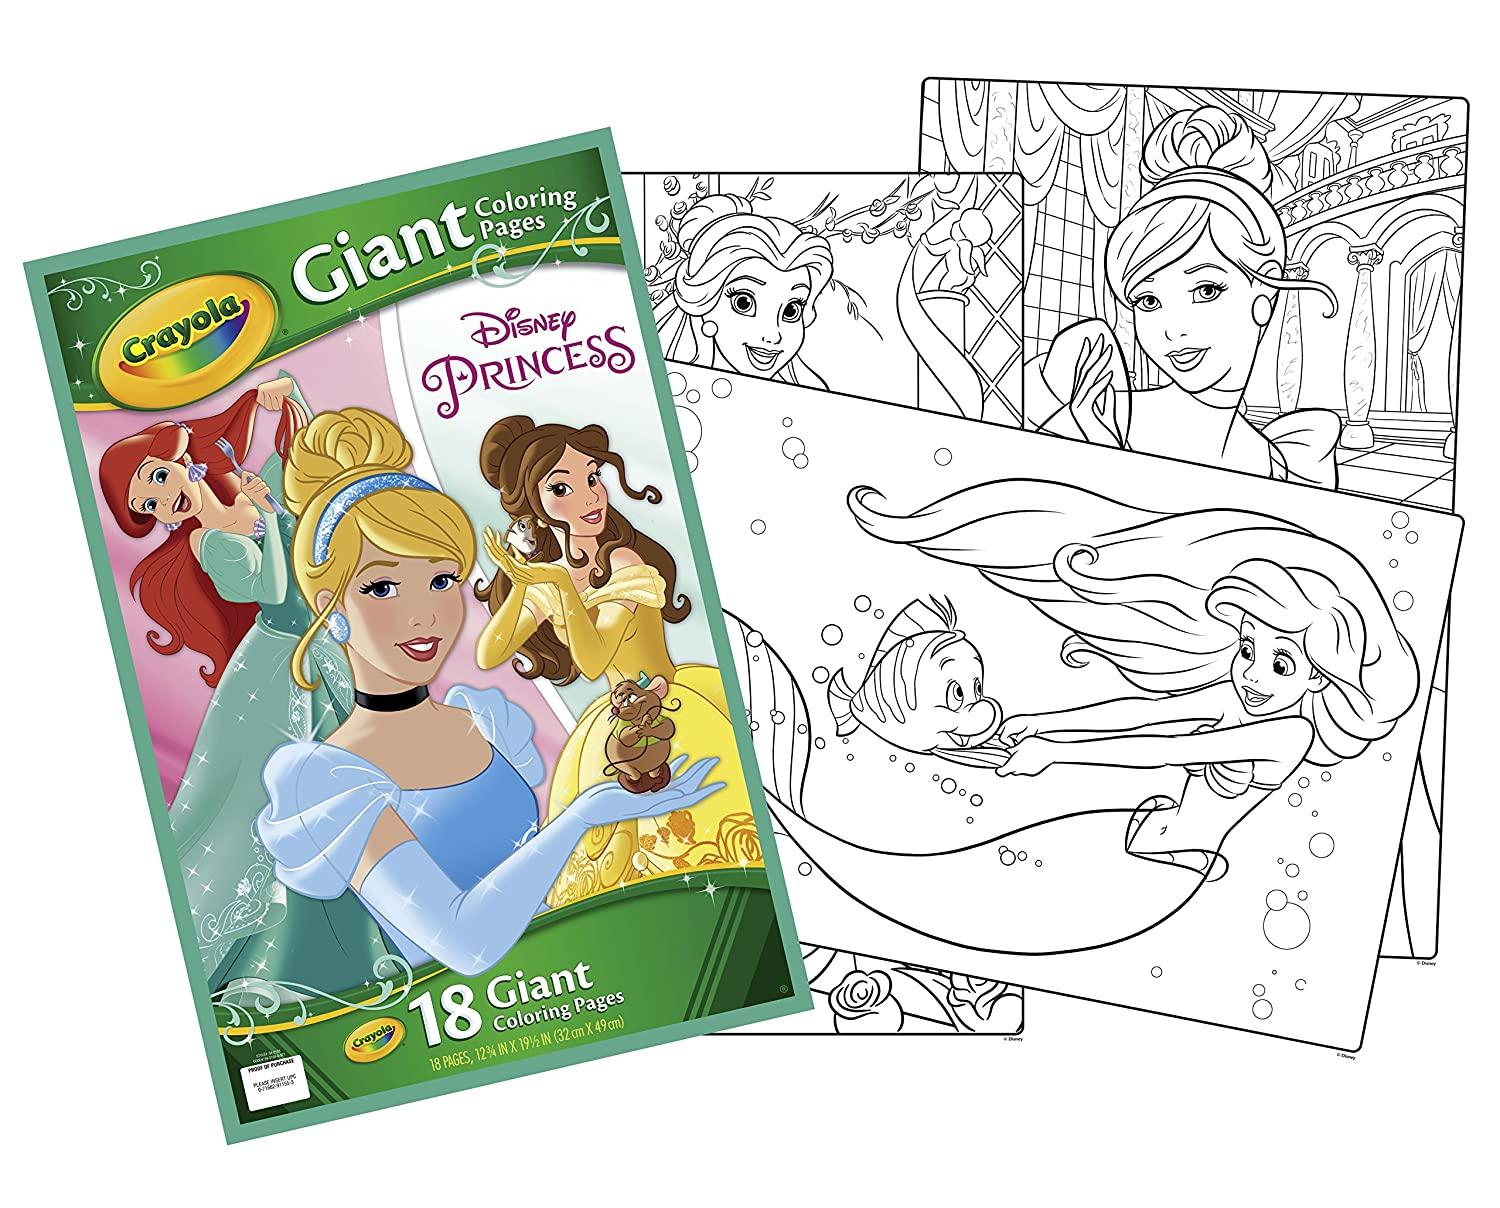 Amazon.com: Disney Princess Giant Coloring Pages: Toys & Games